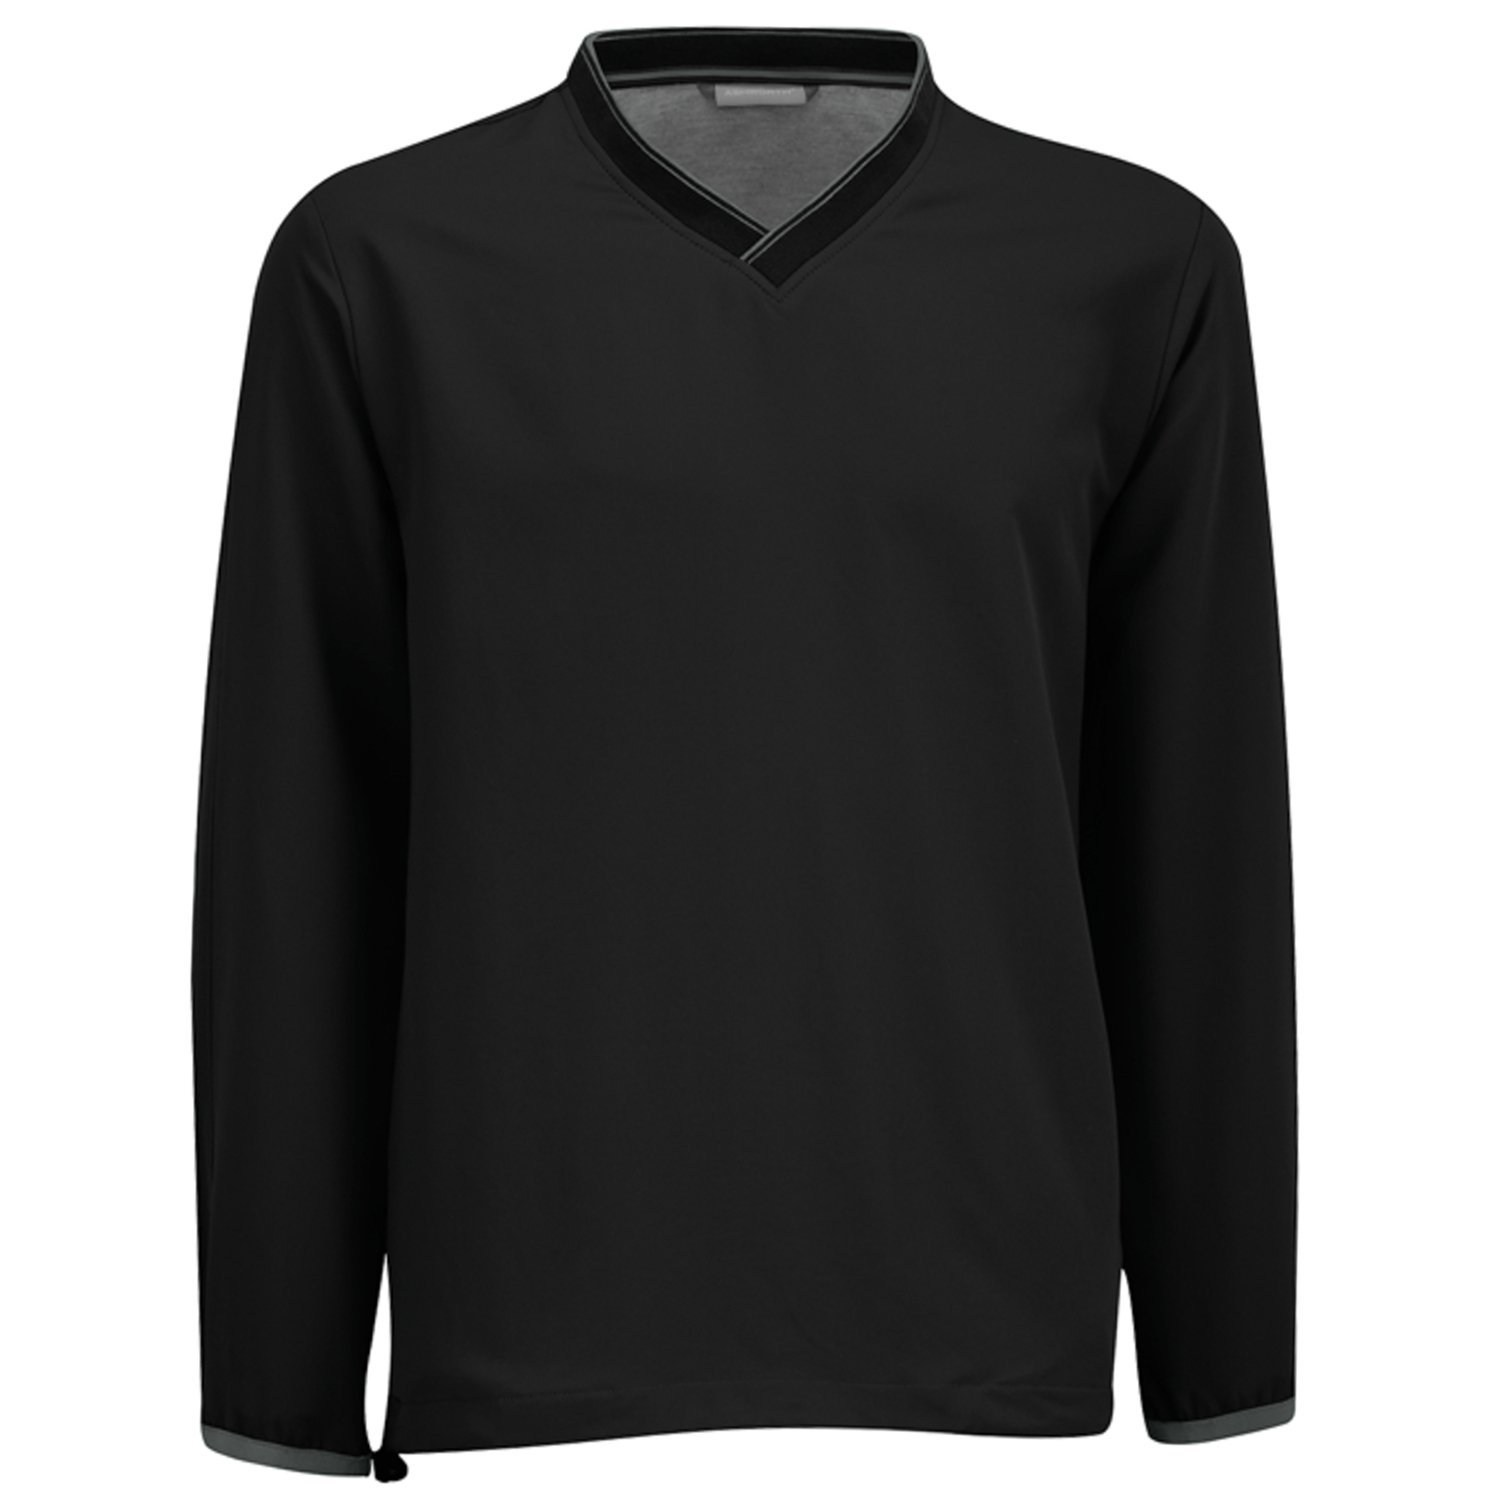 Mens Ashworth Performance Solid V-Neck Golf Windshirts